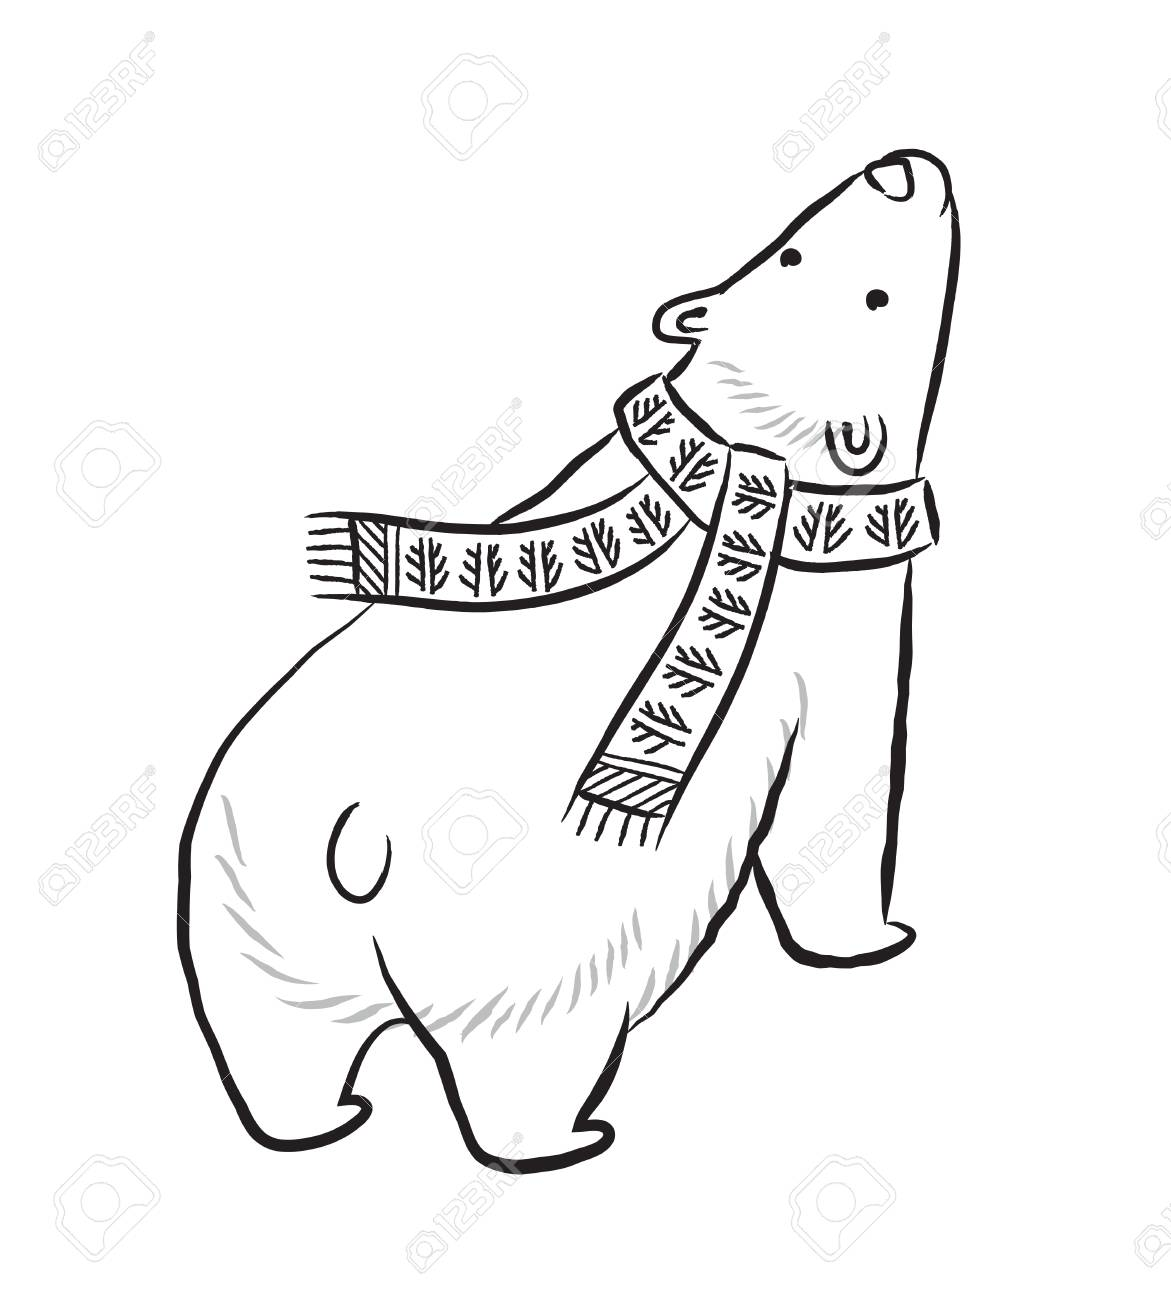 1171x1300 Hand Drawn Outline Print With Polar Bear In Winter Scarf Royalty